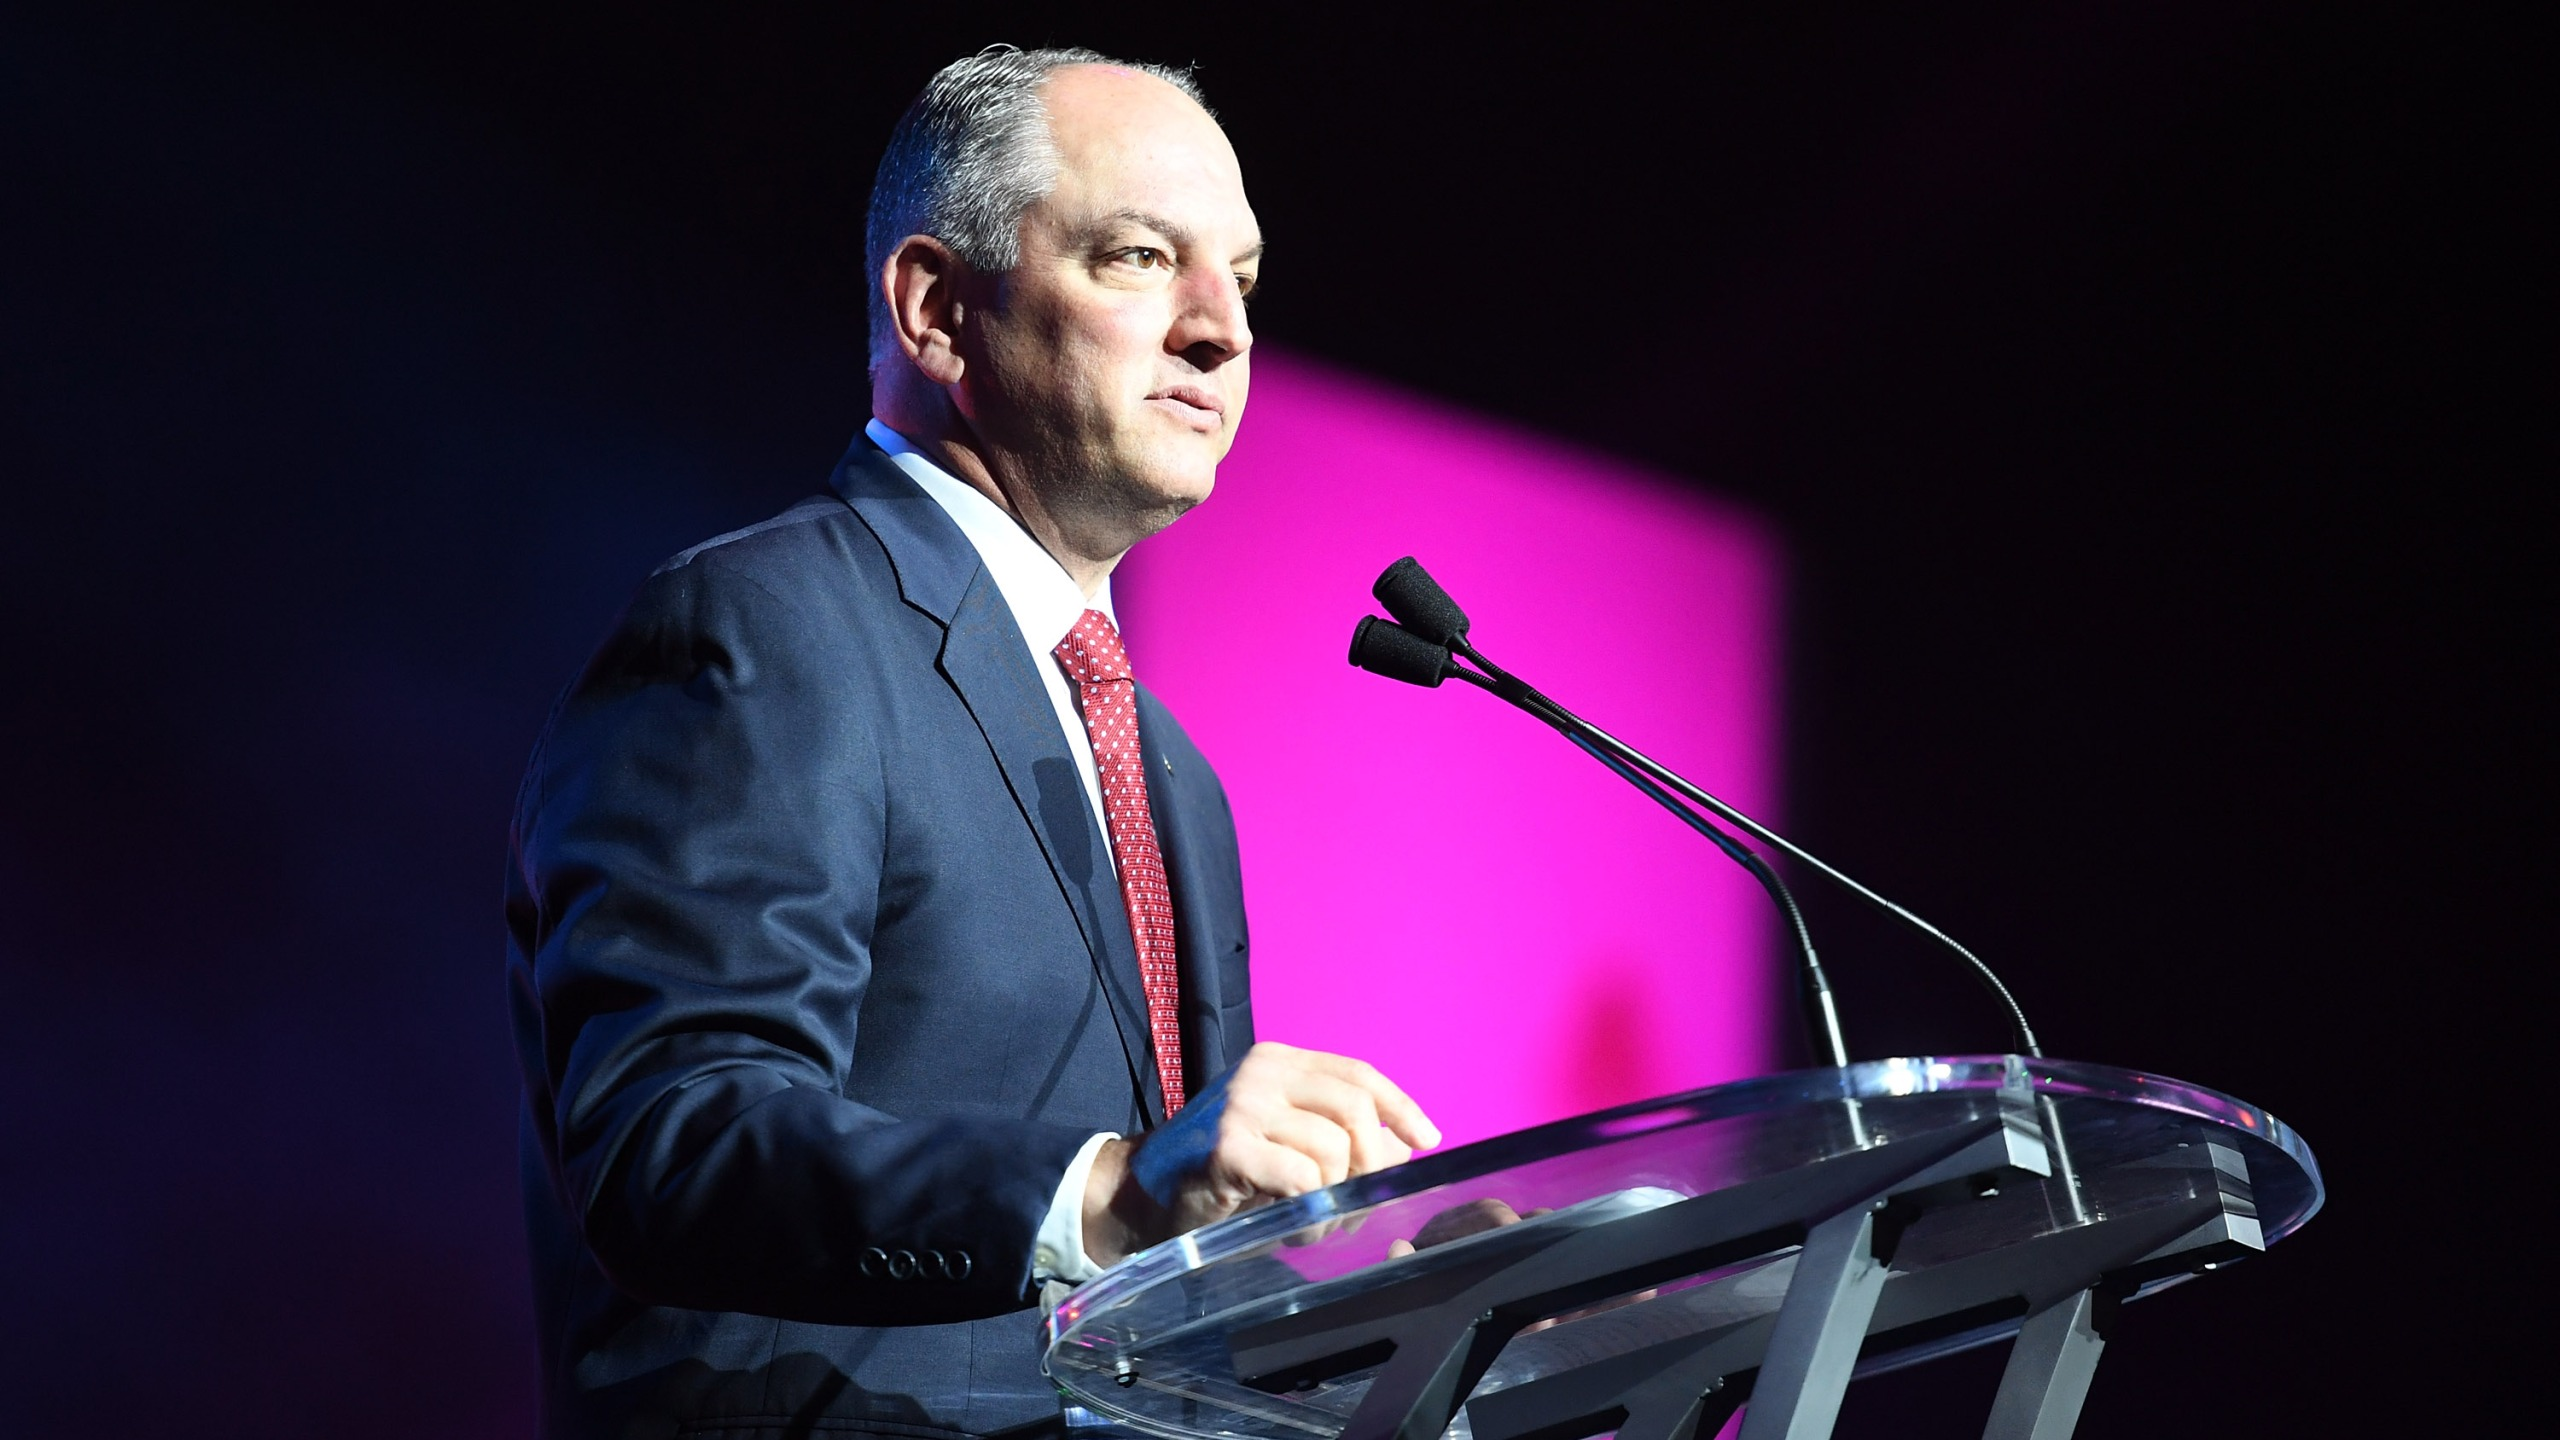 NEW ORLEANS, LA - JUNE 30: Governor John Bel Edwards speaks onstage at the 2017 ESSENCE Festival presented by Coca-Cola at Ernest N. Morial Convention Center on June 30, 2017 in New Orleans, Louisiana. (Photo by Paras Griffin/Getty Images for 2017 ESSENCE Festival )